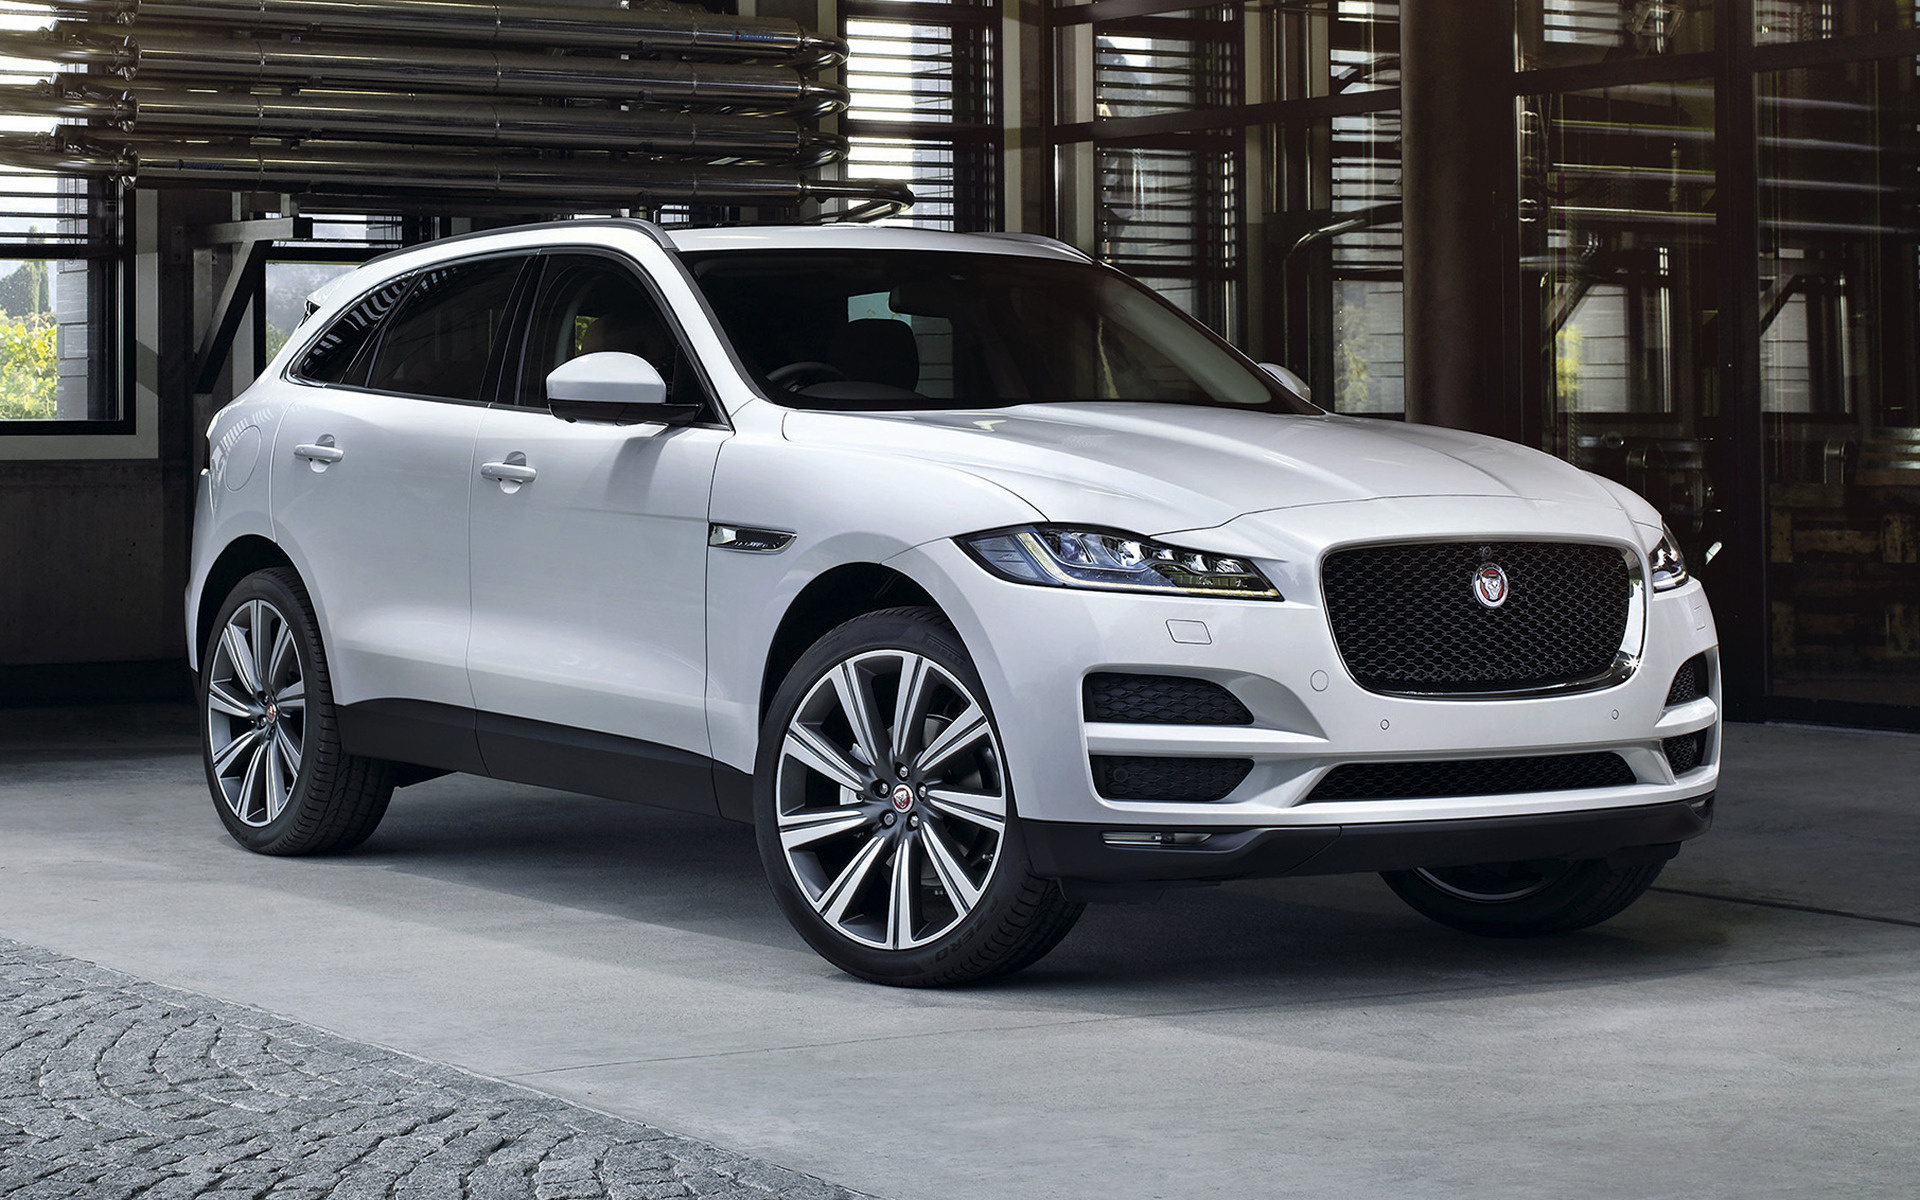 2016 Dodge Ram >> 2016 Jaguar F-Pace (UK) - Wallpapers and HD Images | Car Pixel